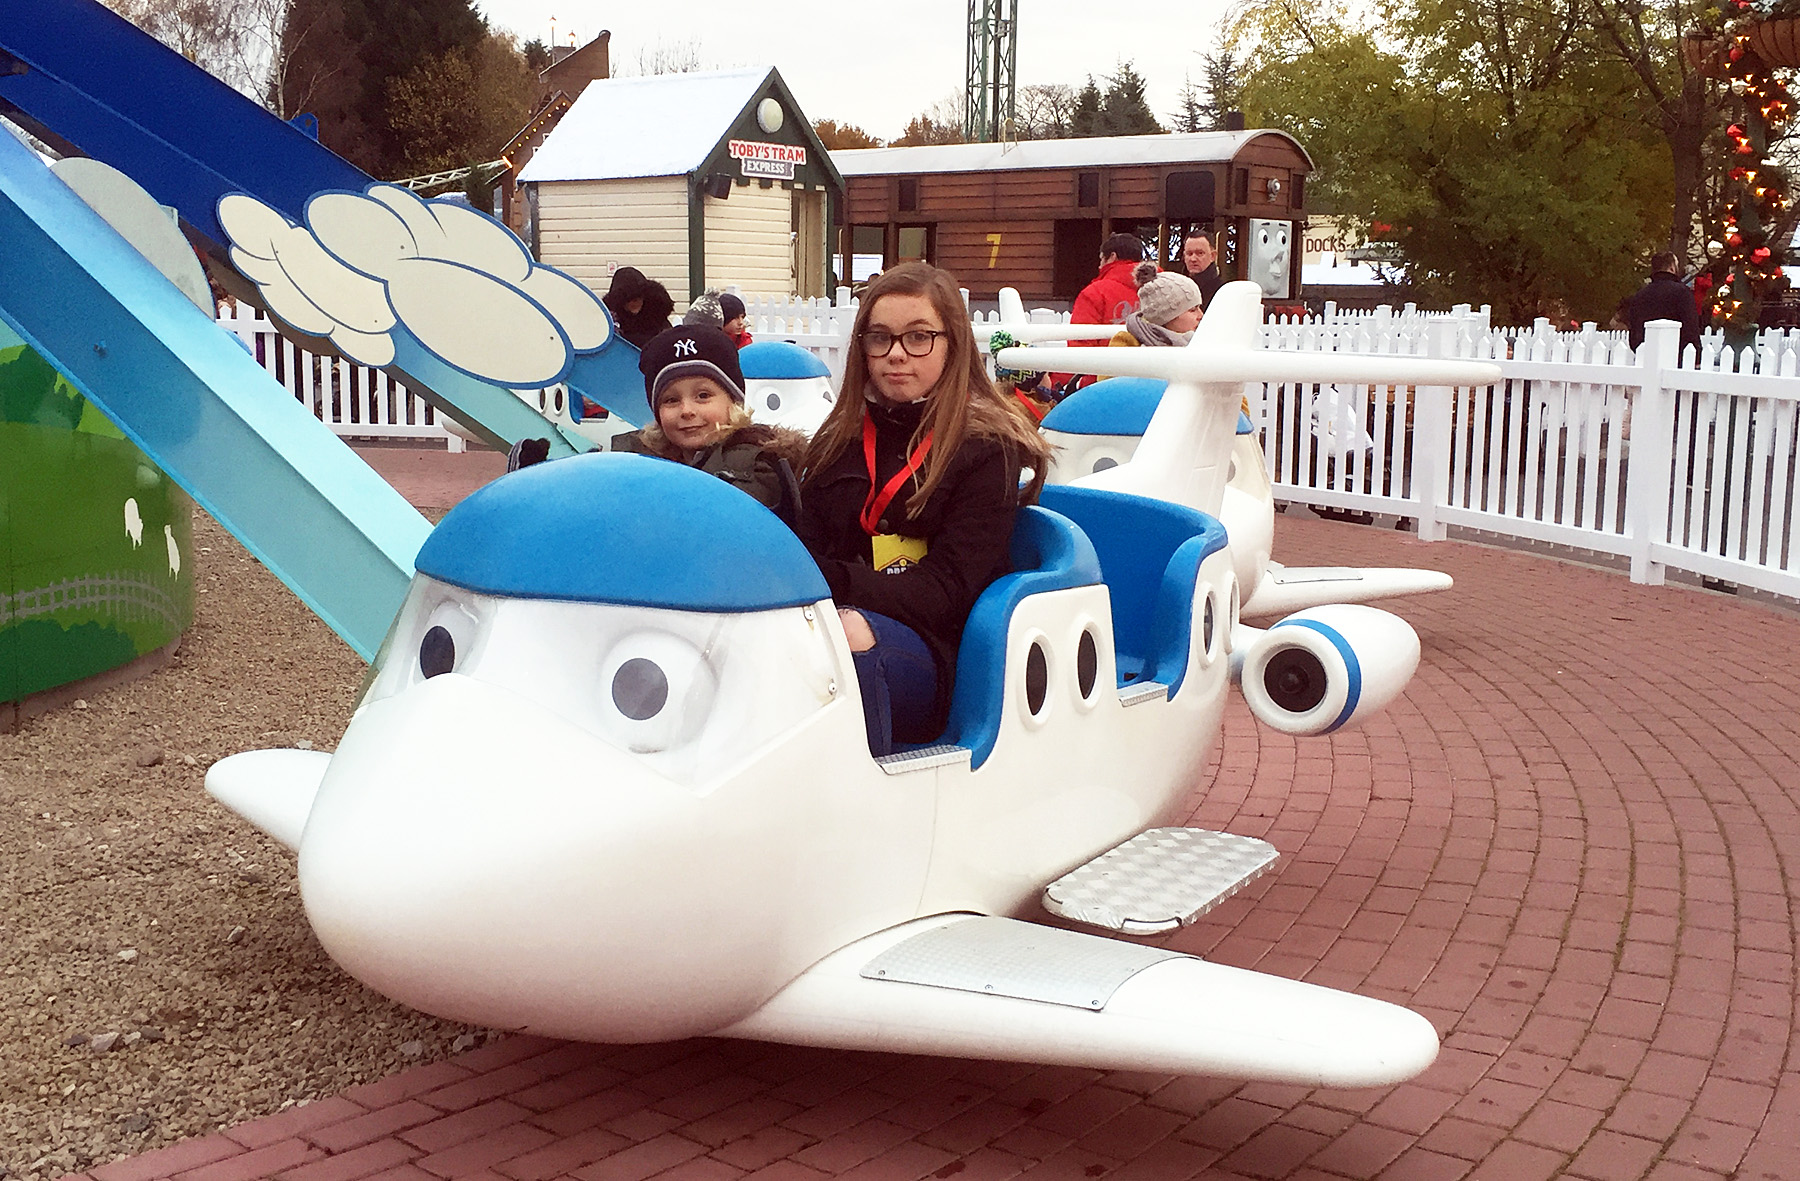 Flying lesson at Sodor airport in Thomas Land